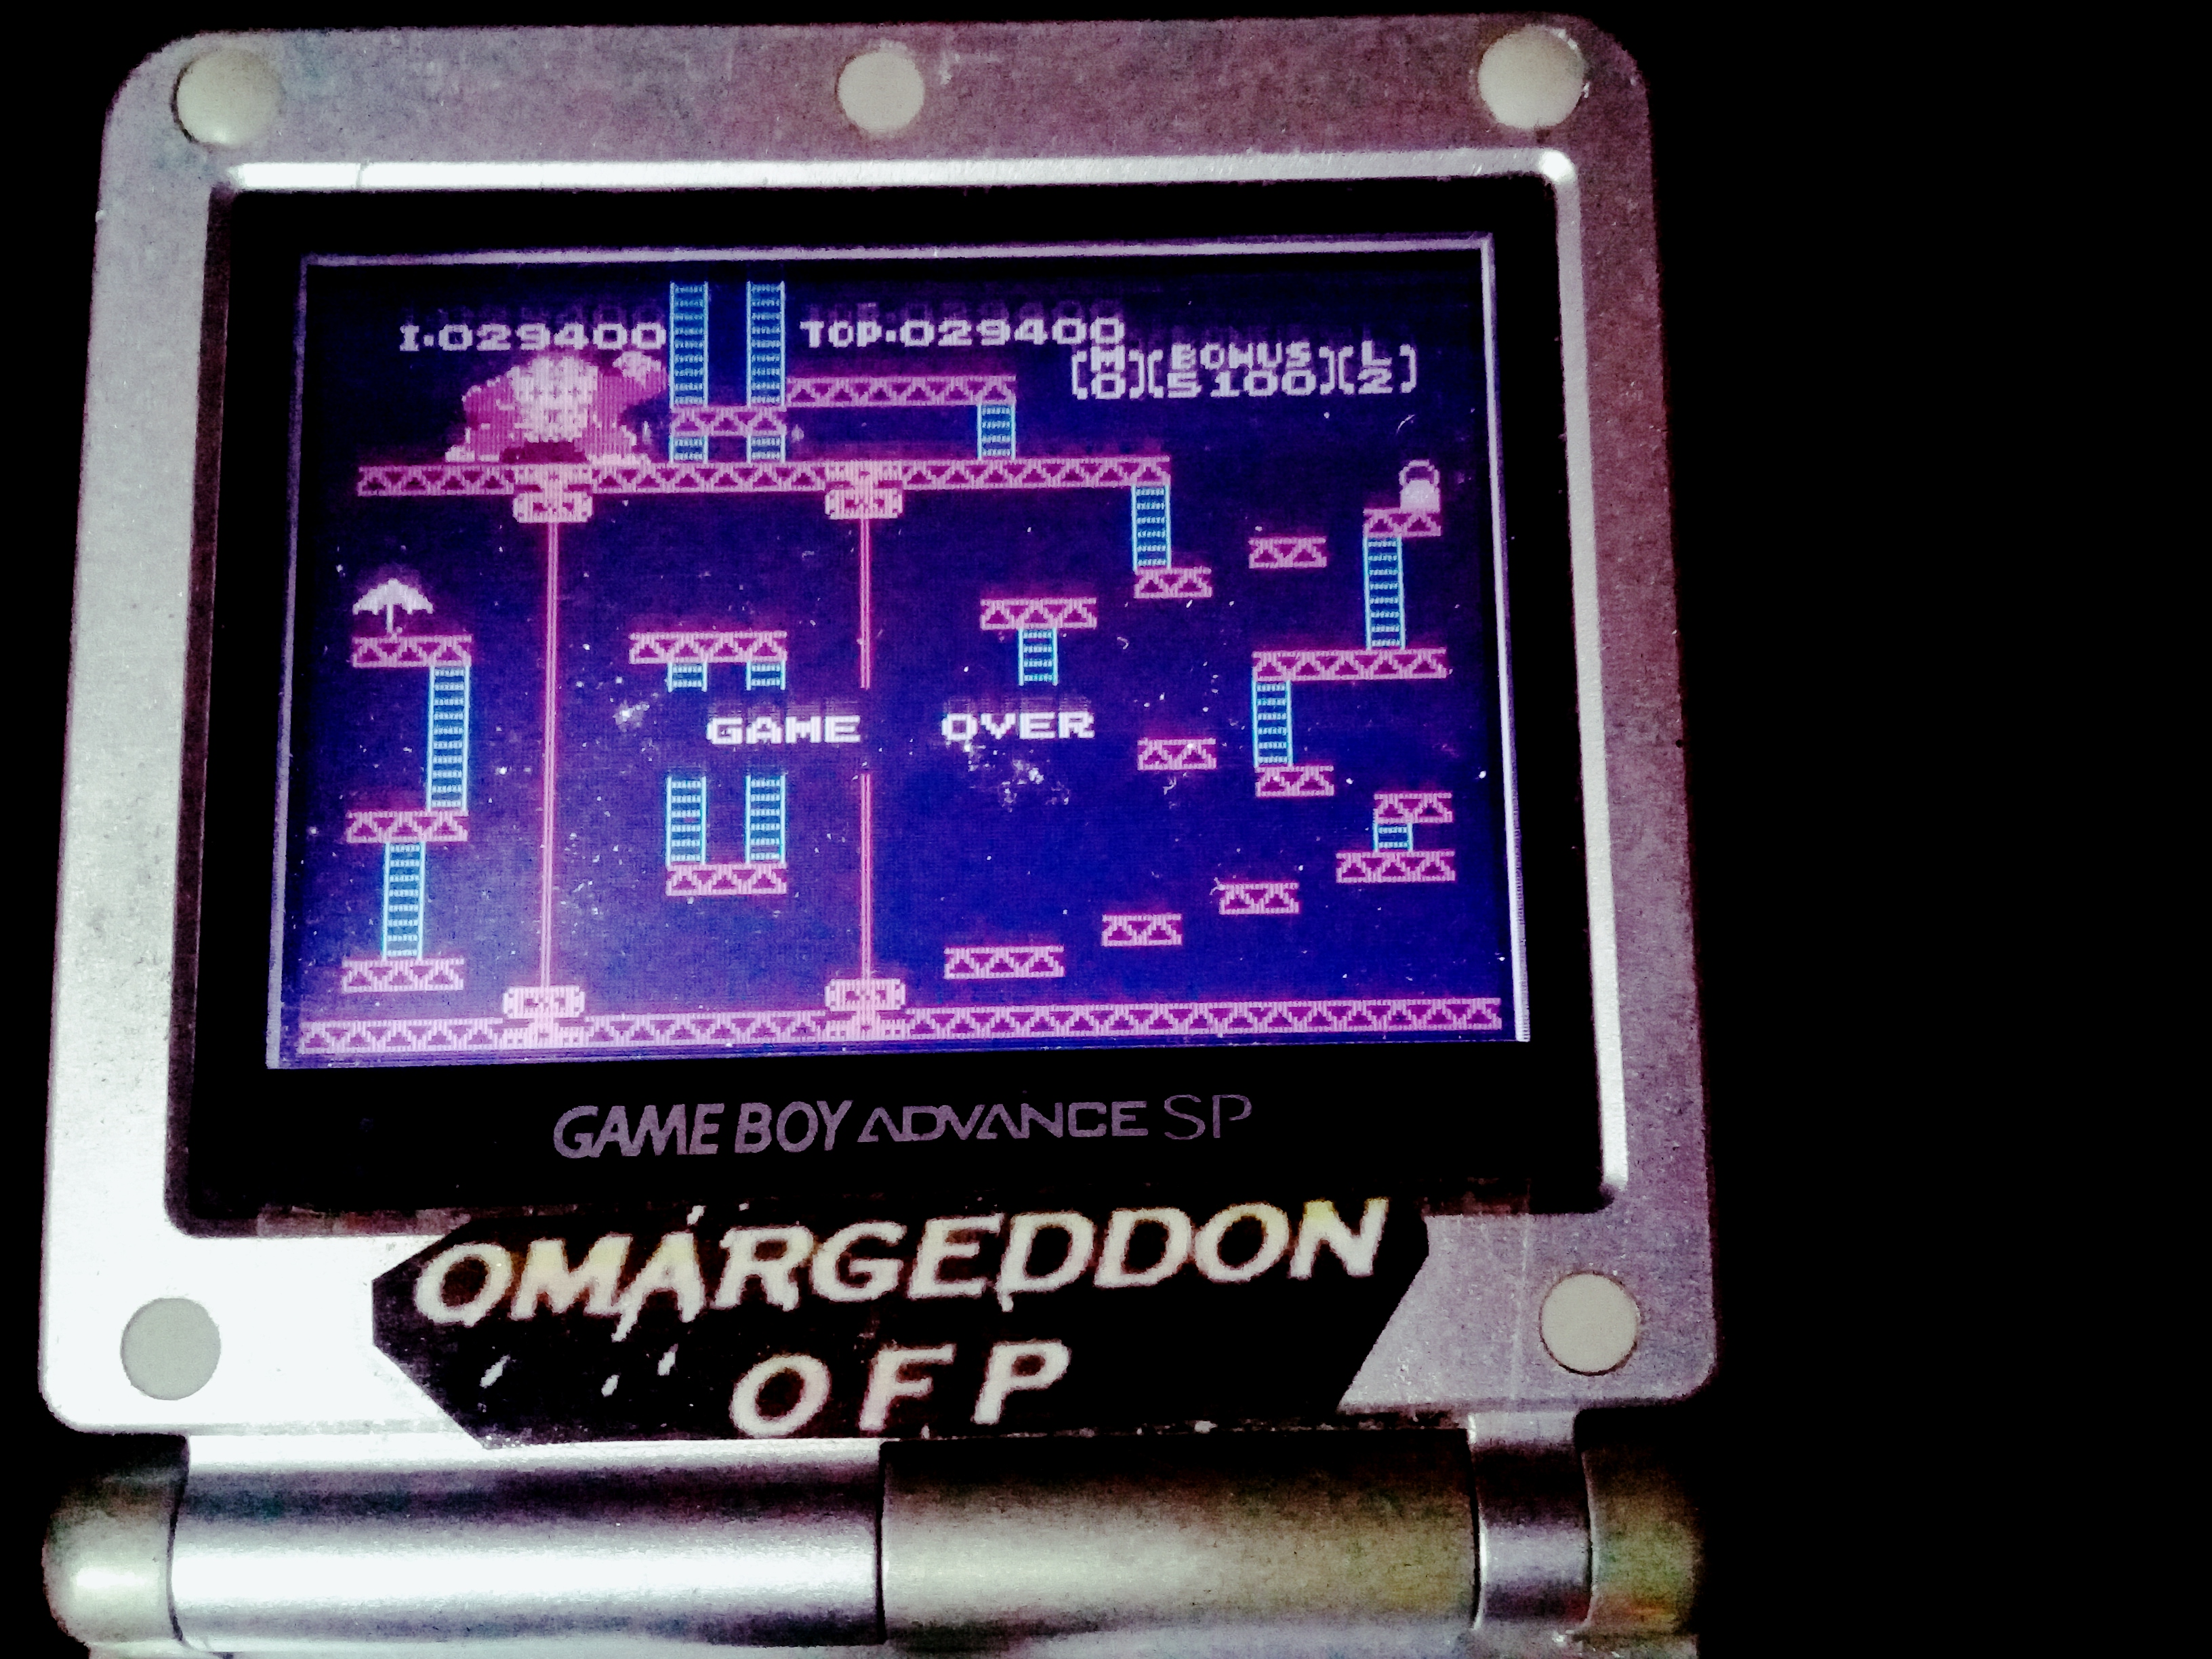 omargeddon: Famicom Mini: Vol. 2: Donkey Kong [Game B] (GBA) 29,400 points on 2019-12-03 10:52:38